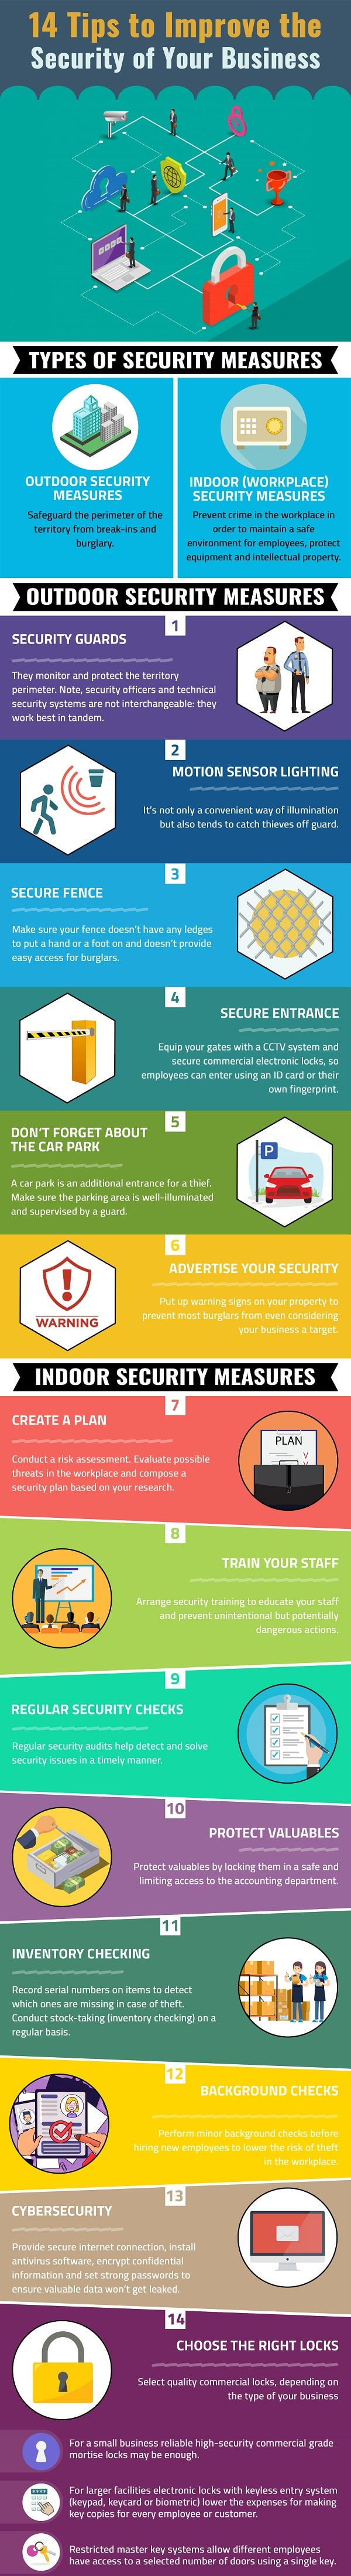 Infographic: 14 Tips to Improve the Security of Your Business